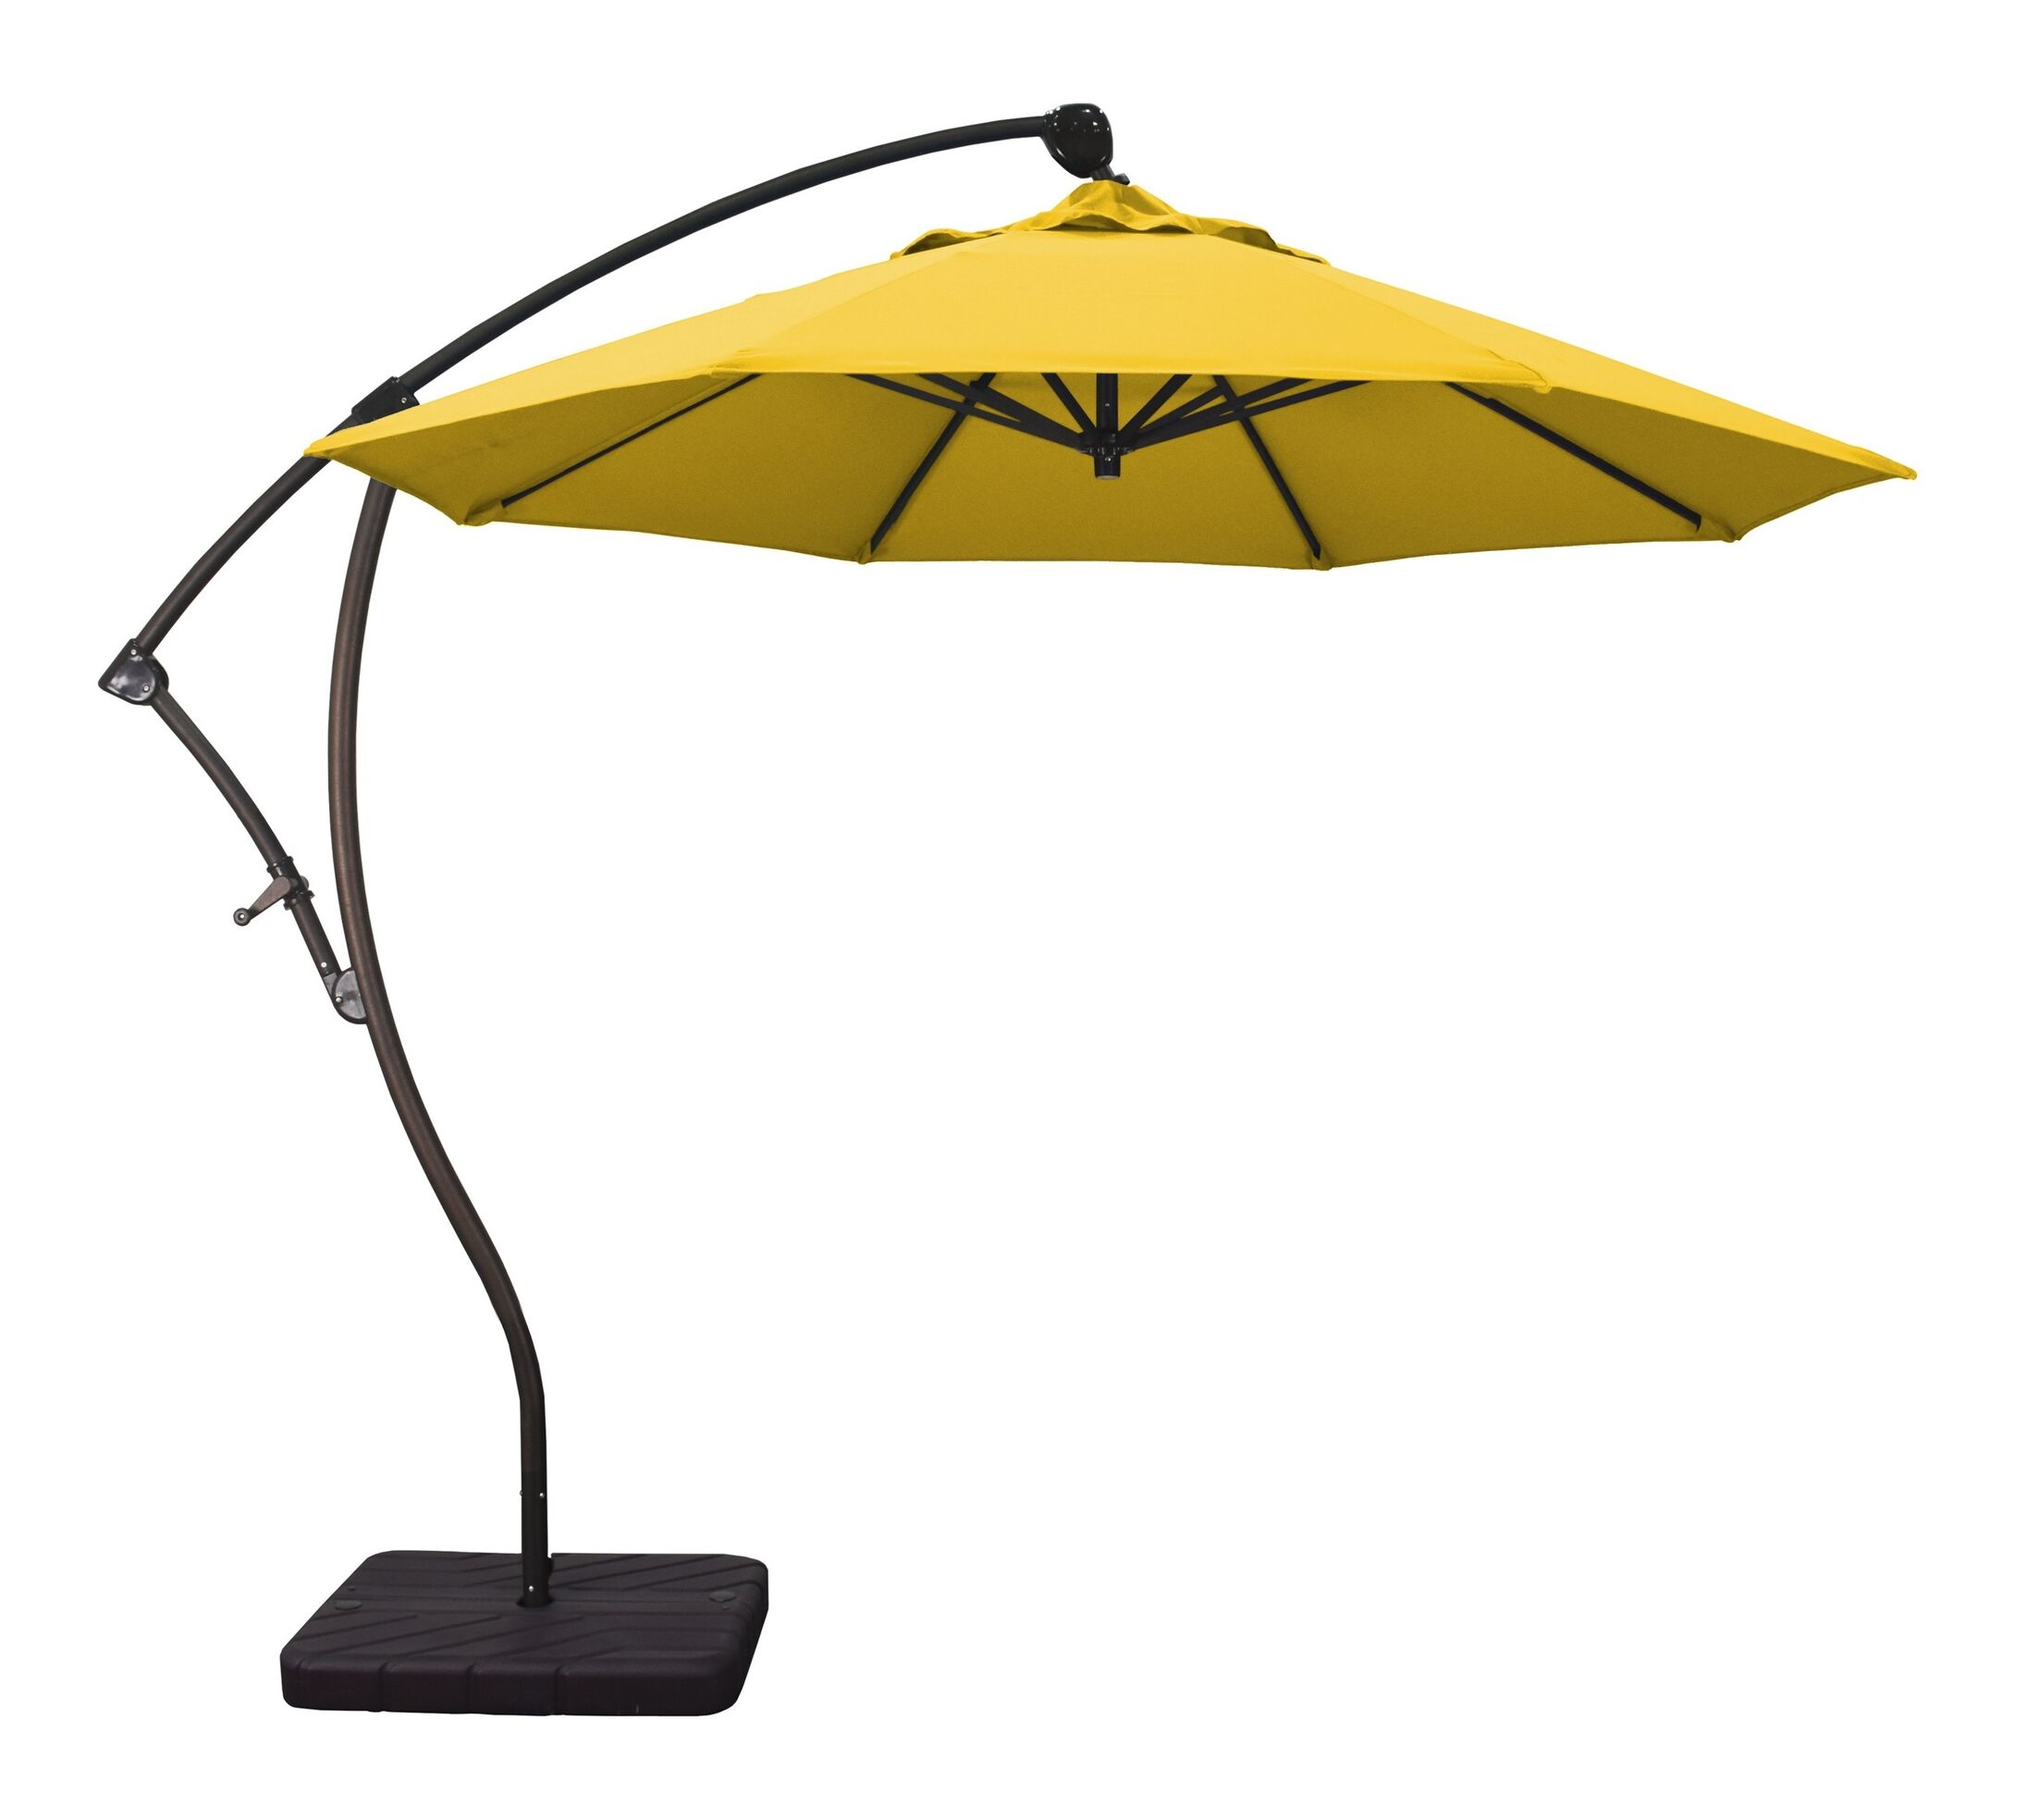 Phat Tommy 9.5' Cantilever Umbrella Fabric: Lemon